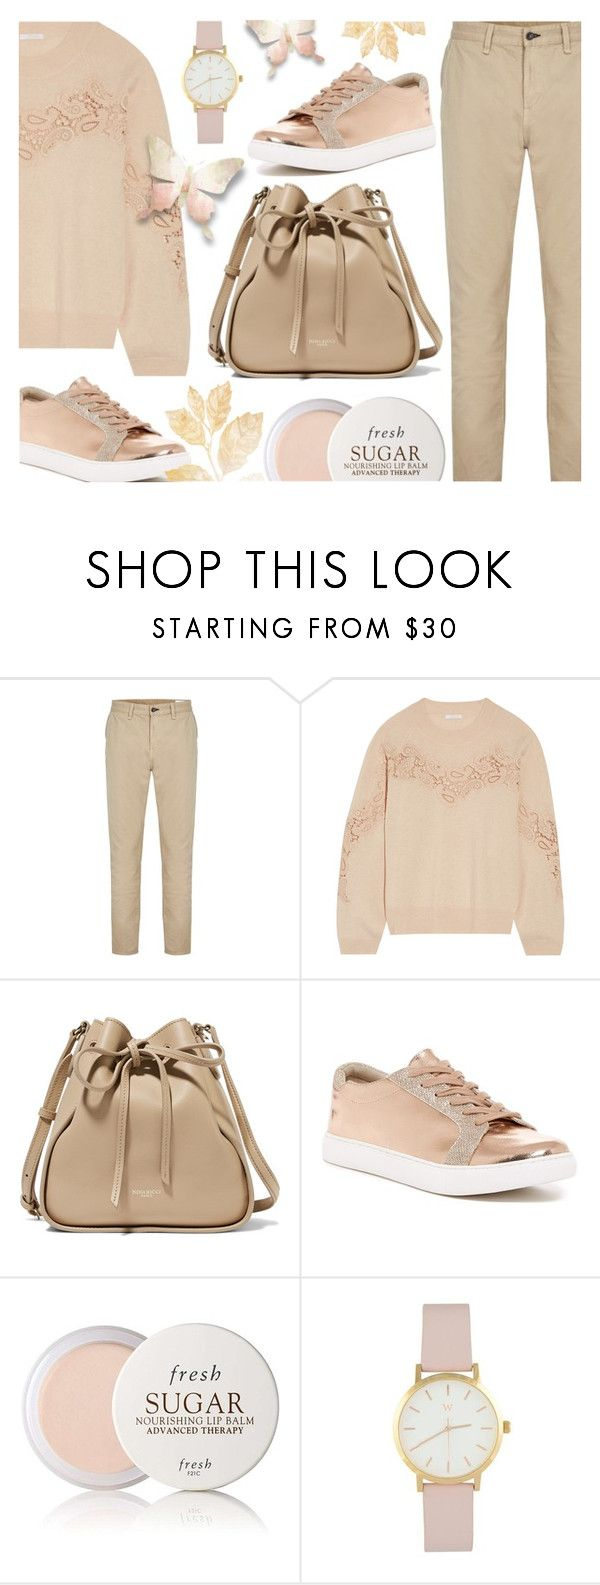 """Pretty Pink"" by ana3blue on Polyvore featuring rag & bone, Chloé, Nina Ricci, Kenneth Cole Reaction and Fresh"